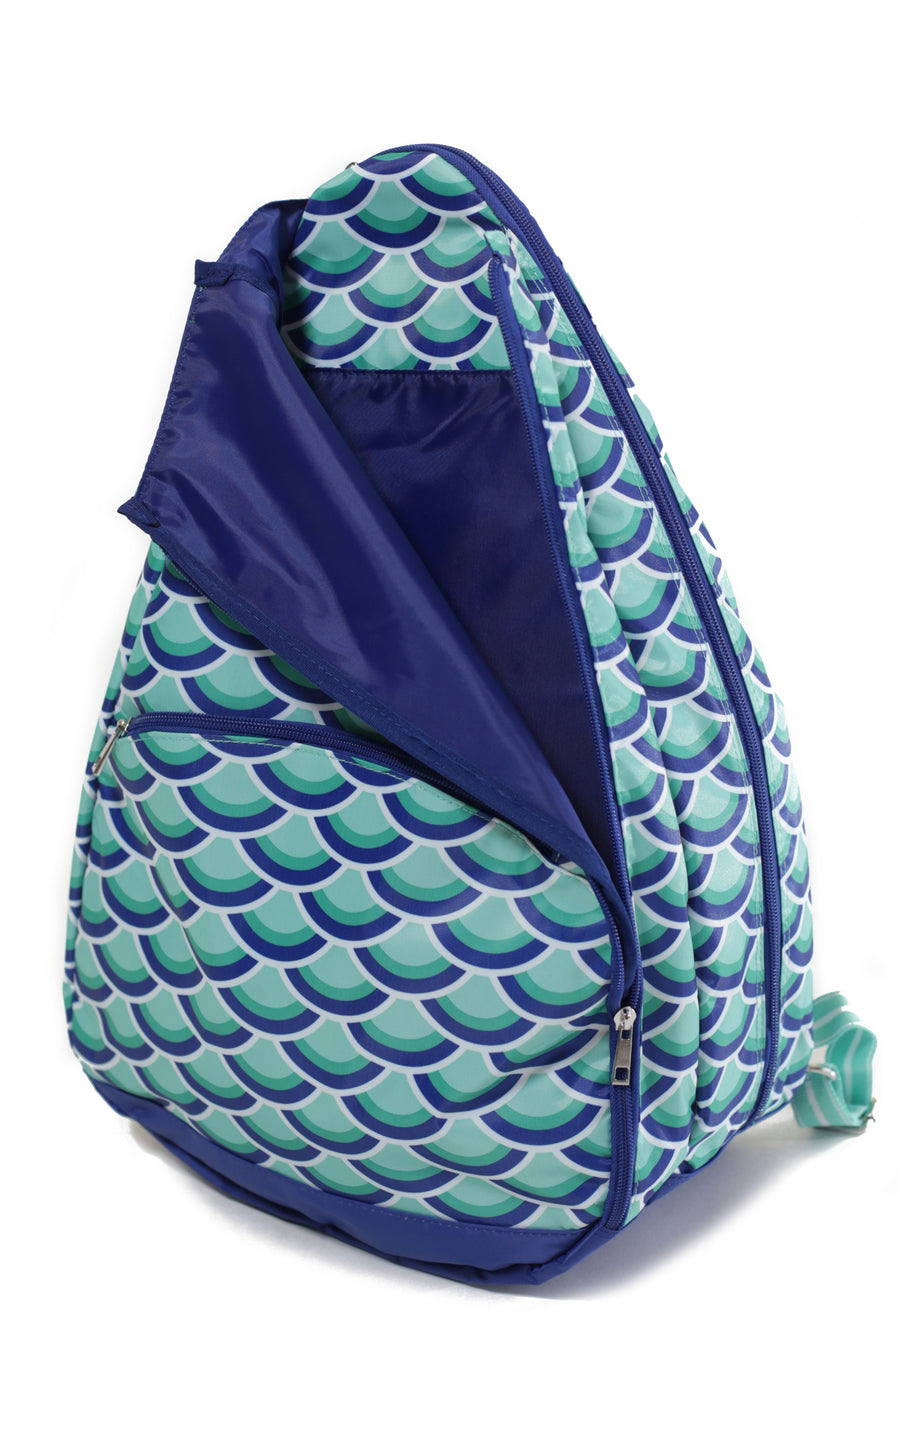 Mermazing Tennis Backpack